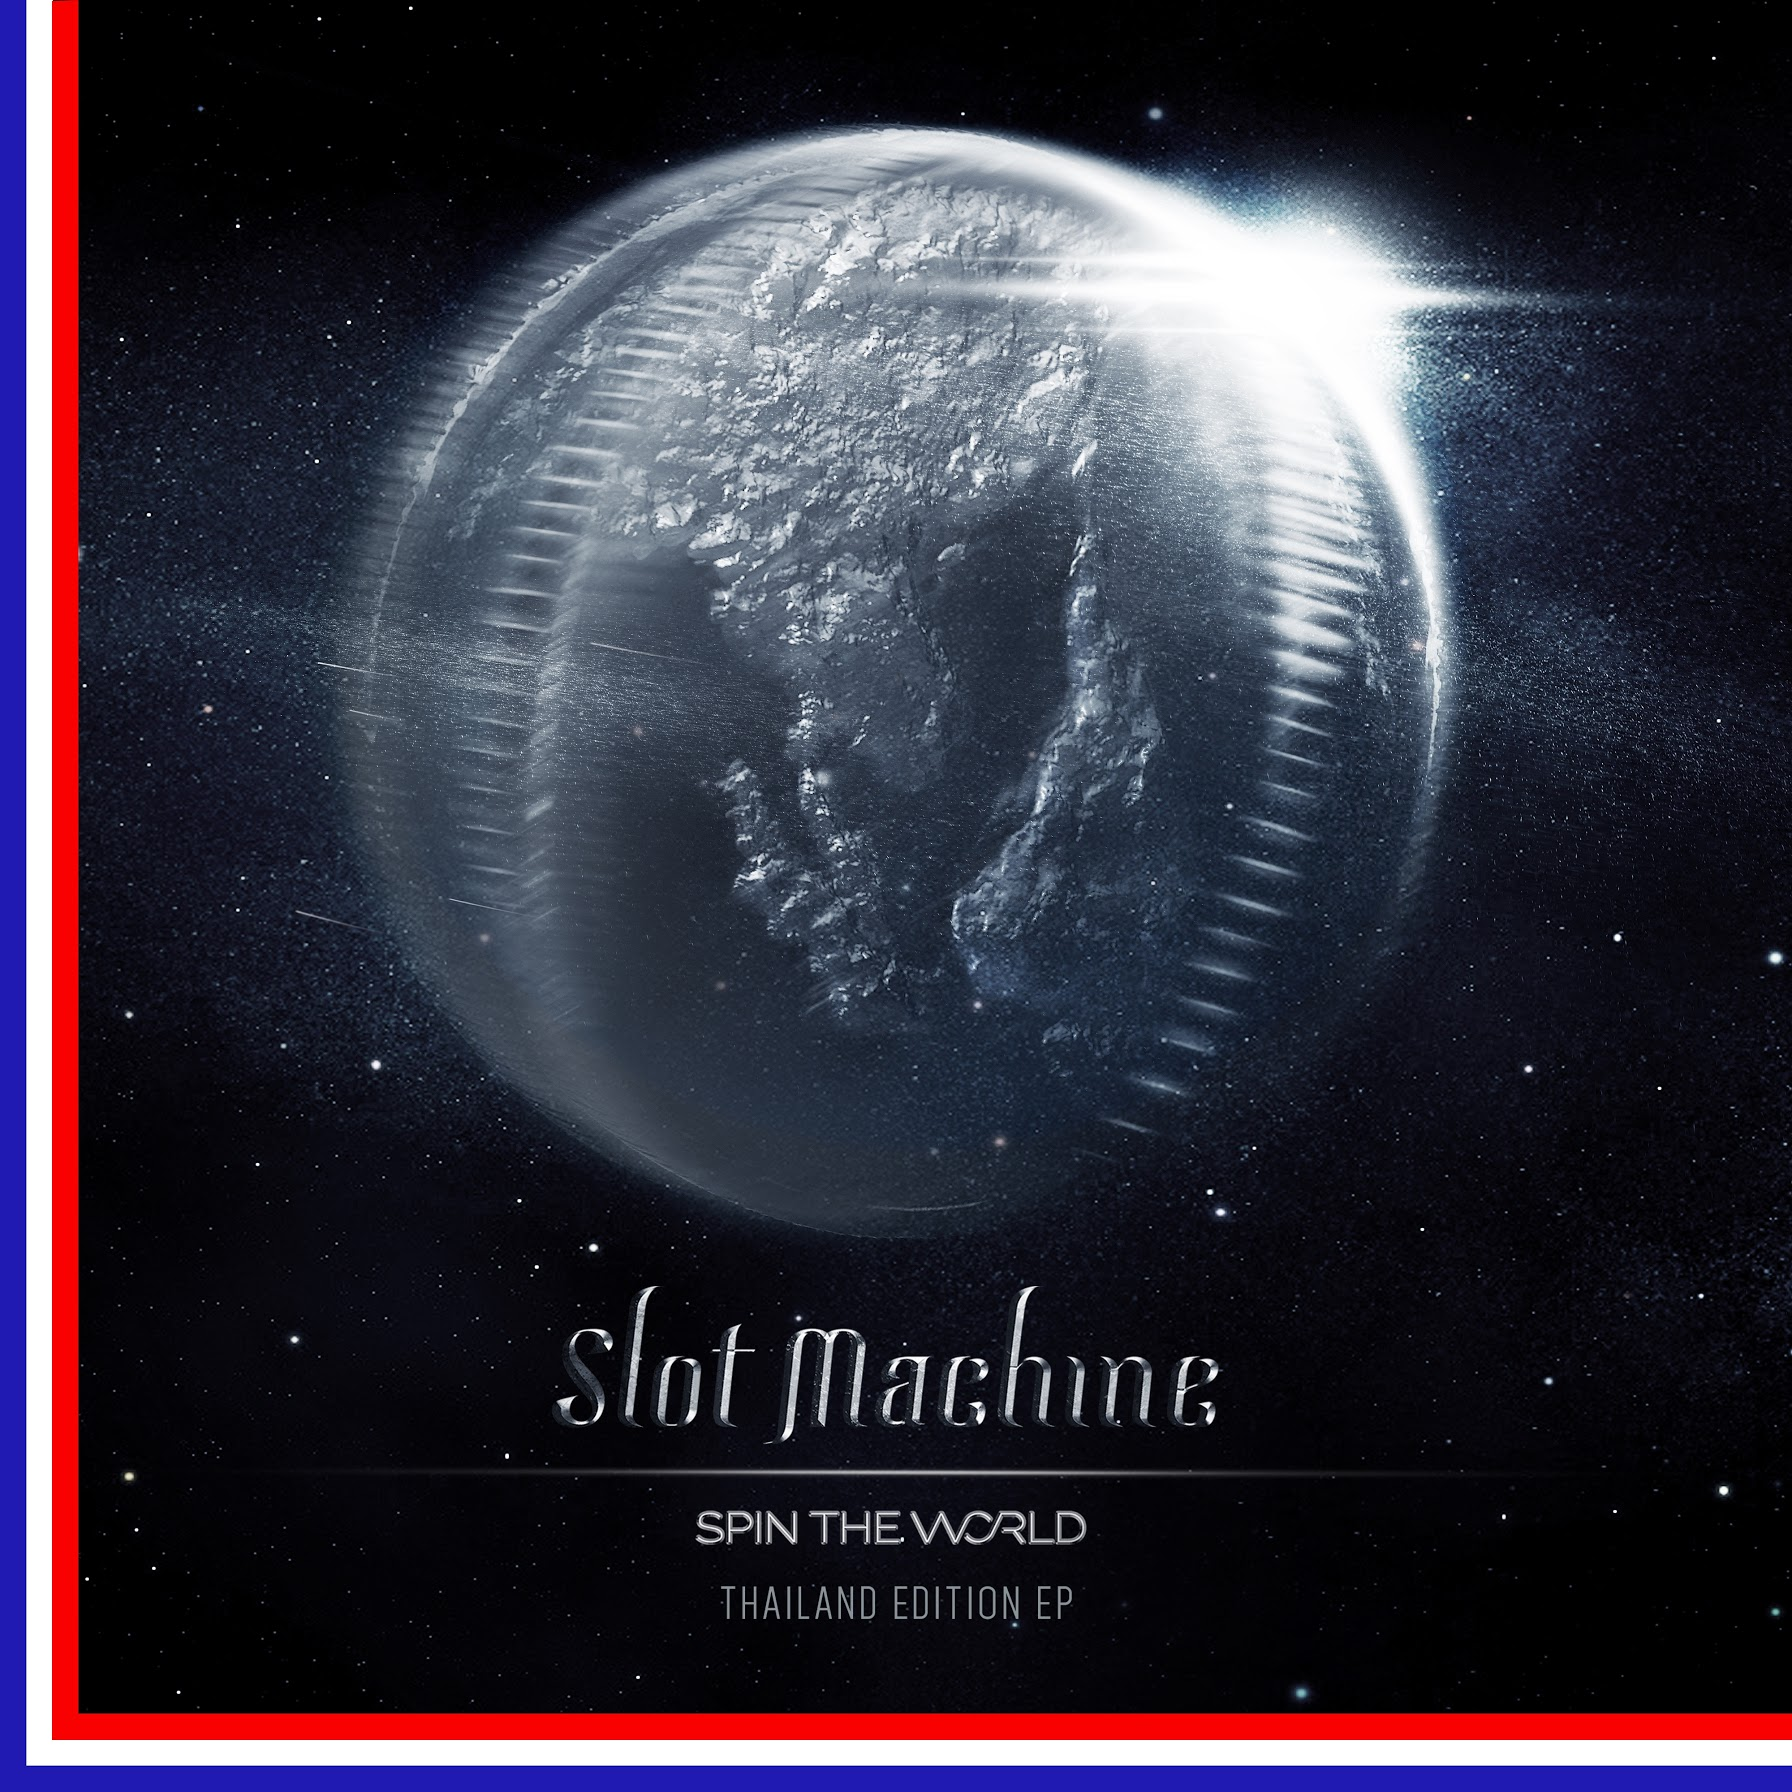 Slot Machine CD: Spin The World Thailand Edition EP